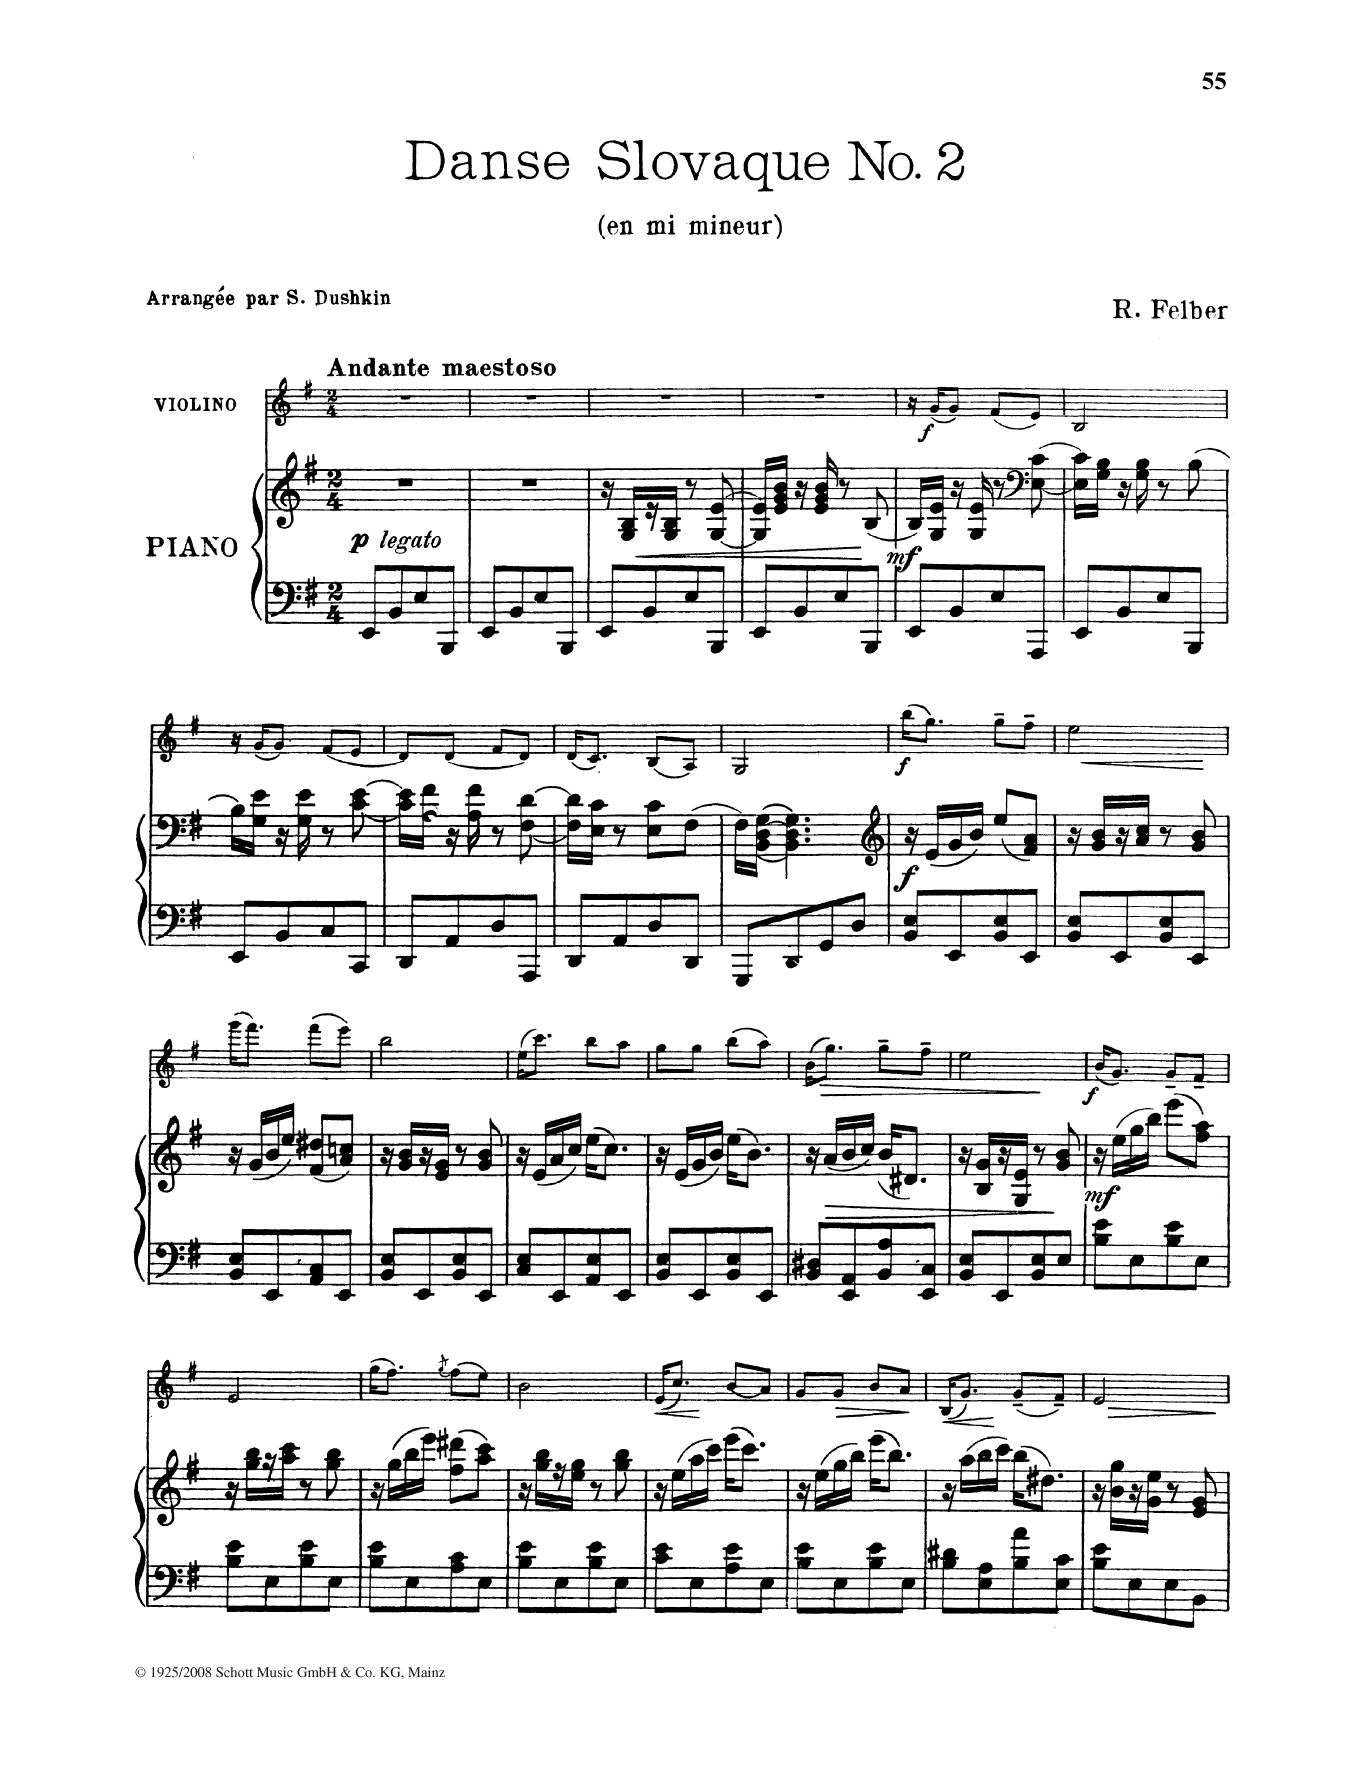 Danse Slovaque No. 2 Sheet Music